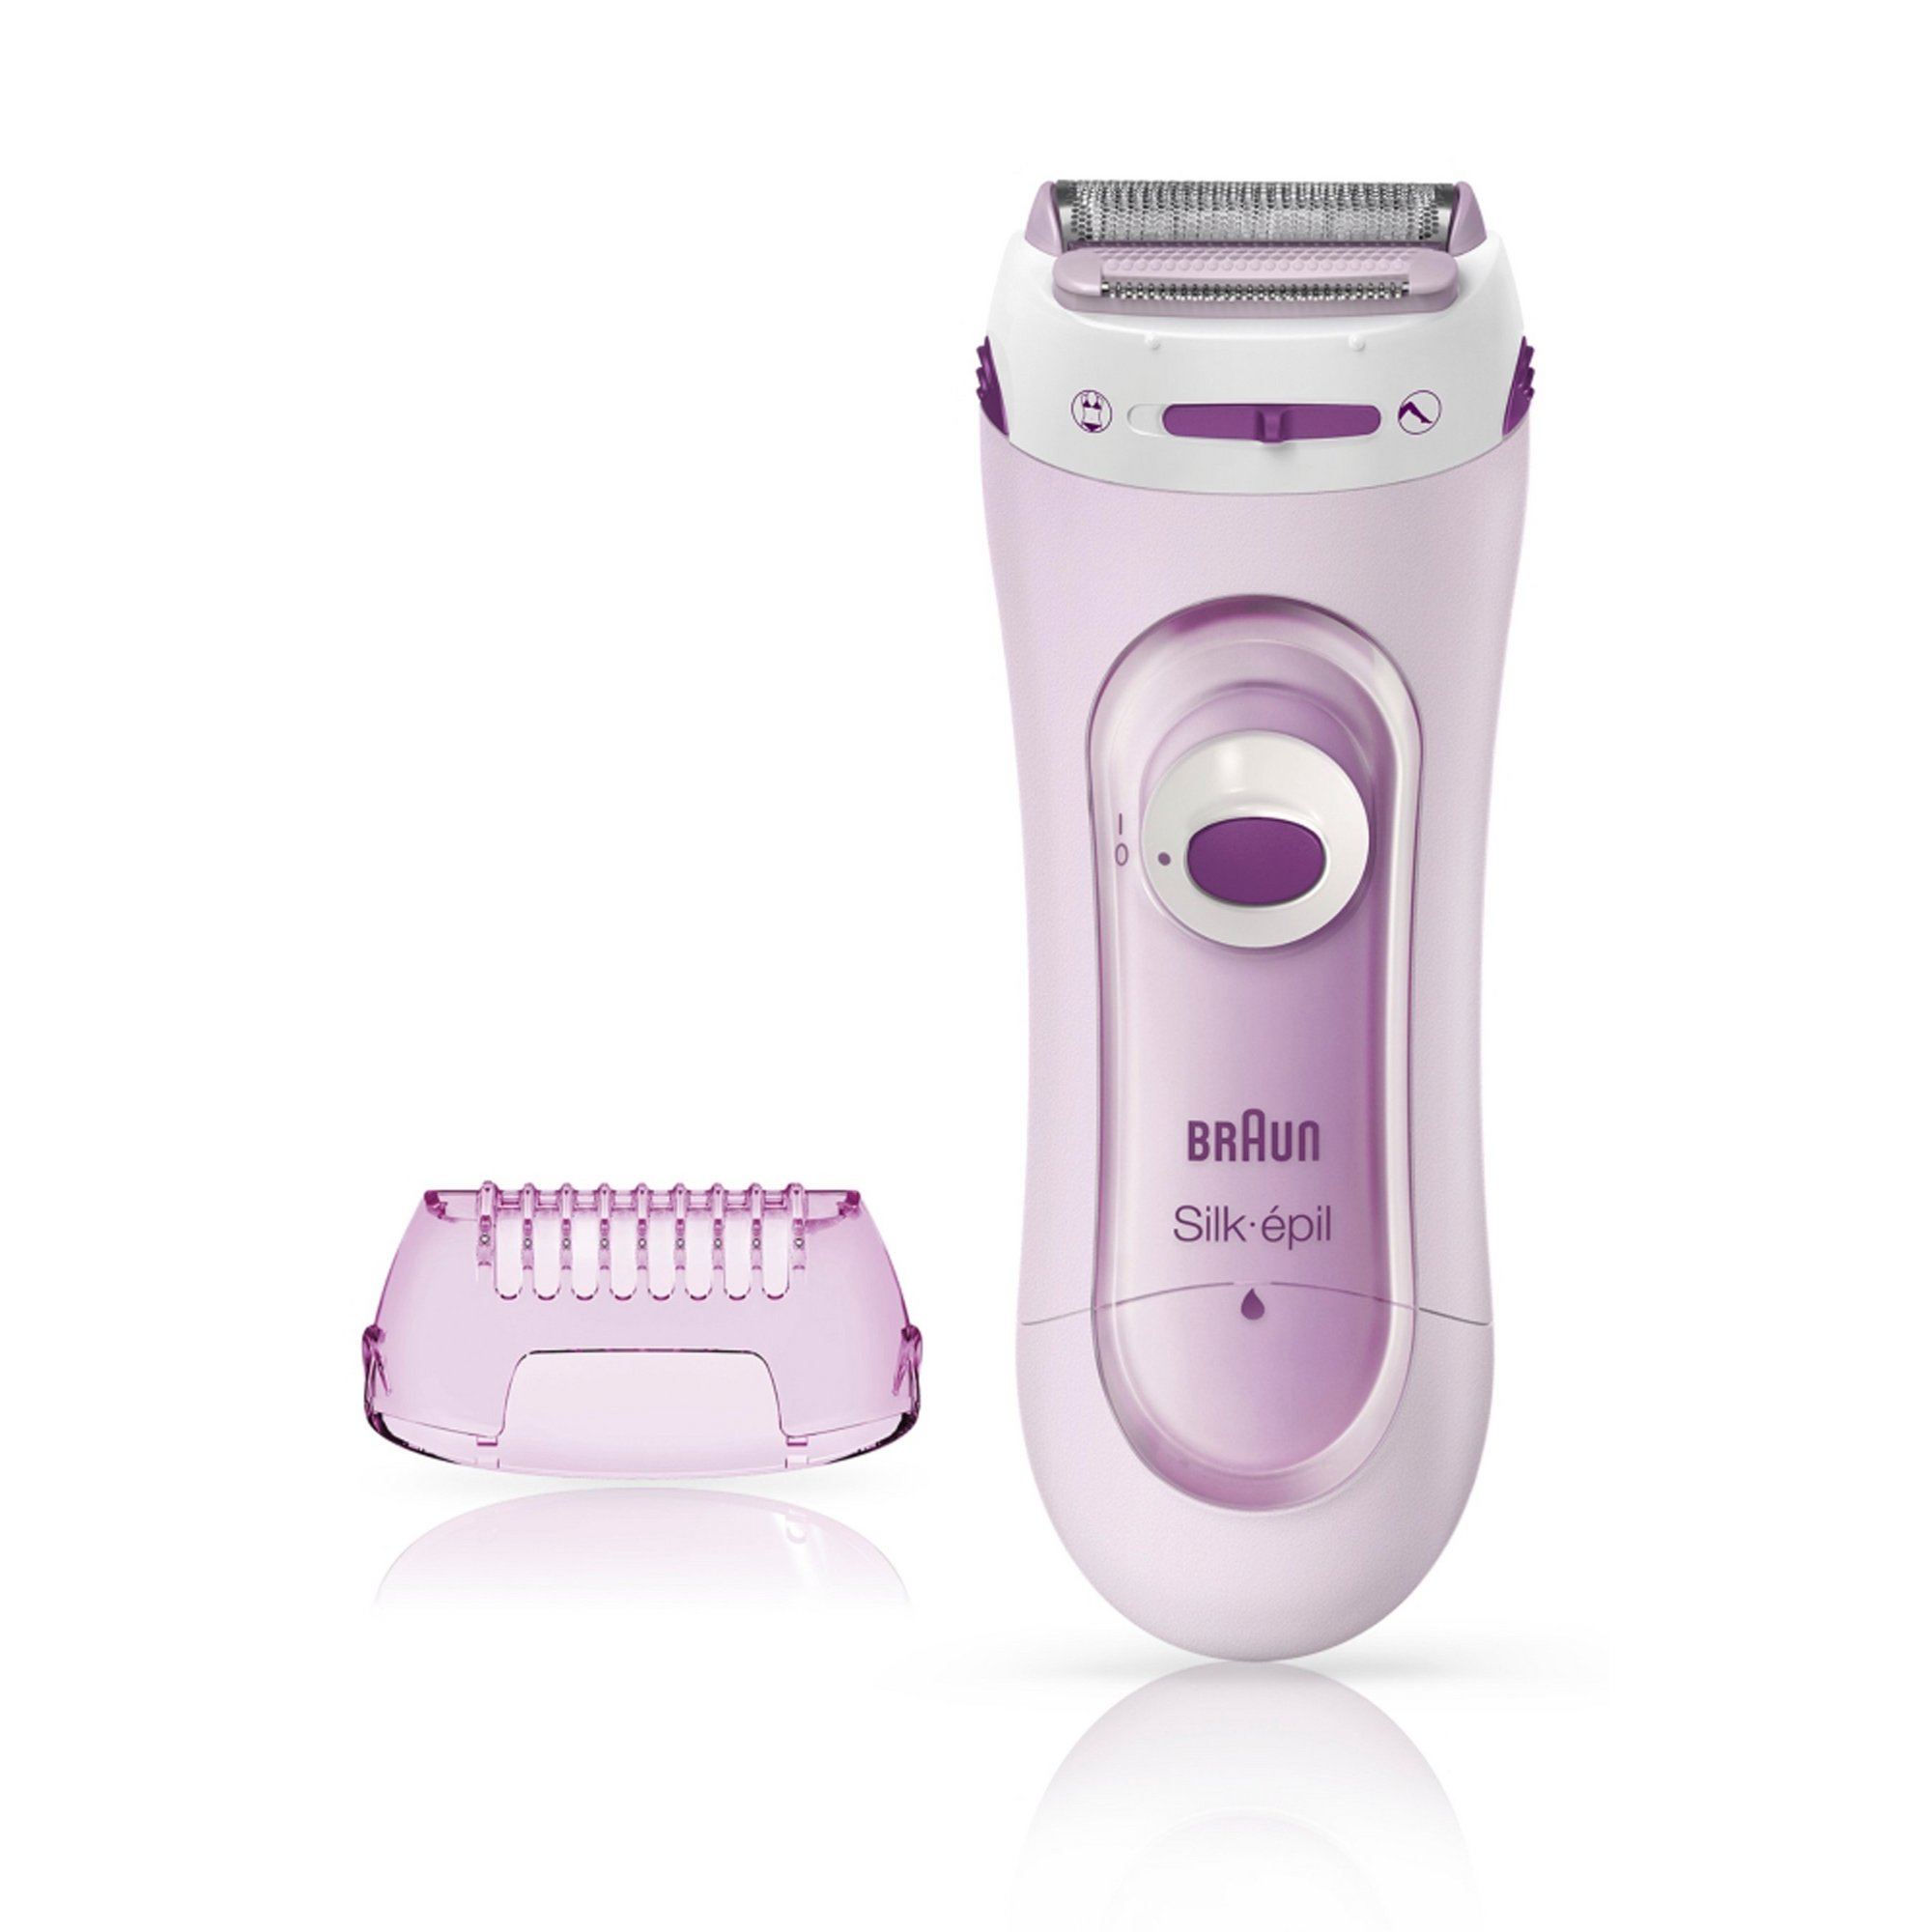 Image of Braun Silk and Soft Body Shaver